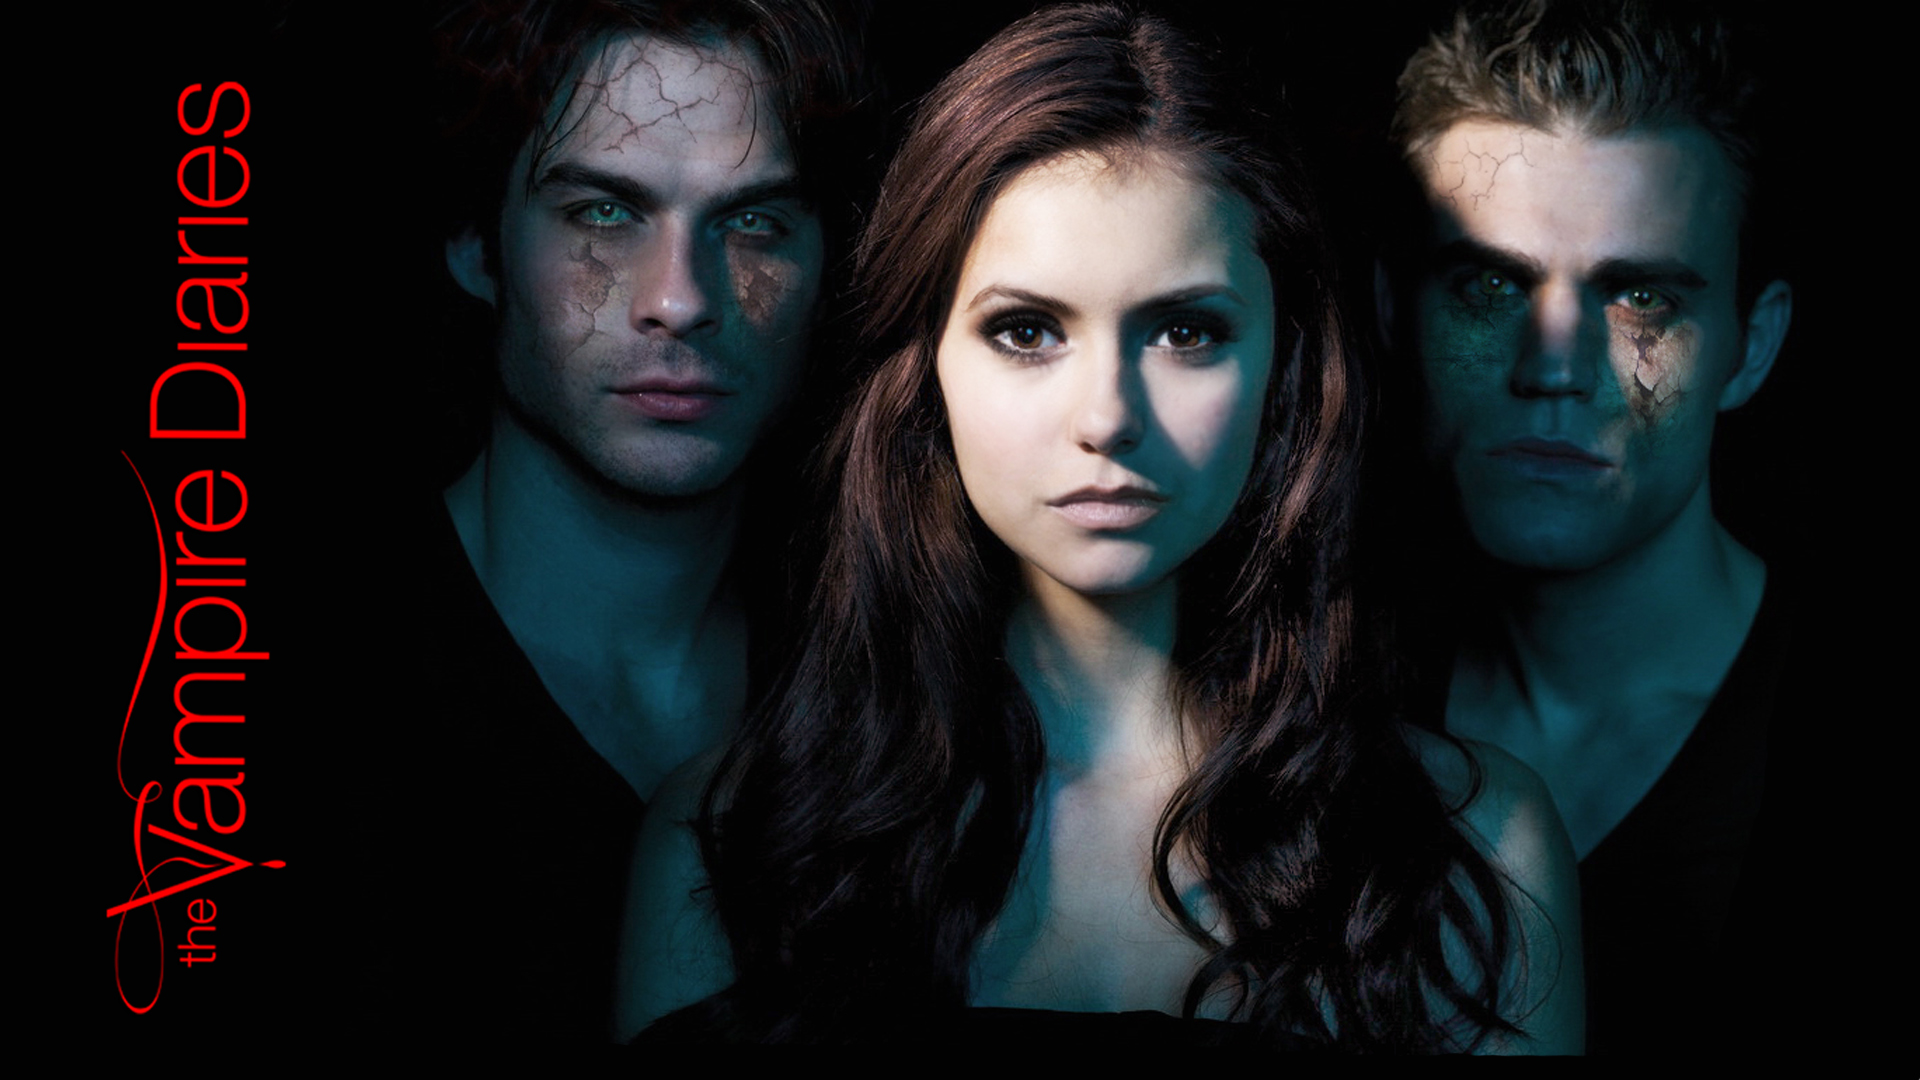 Wallpaper The Vampire Diaries: Best Vampire Diaries Wallpaper HD